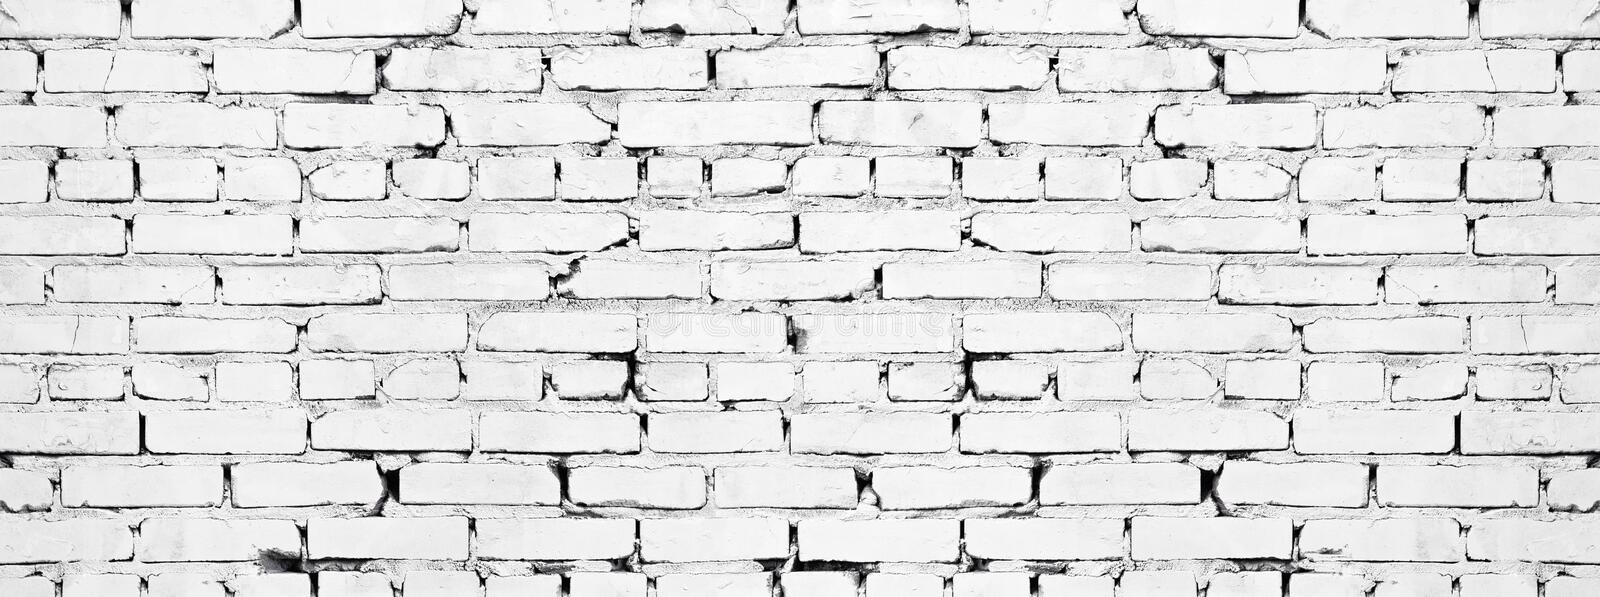 Wide white brick wall texture. Aged rough whitewashed brickwork. Grunge background. Wide white brick wall texture. Old rough whitewashed brickwork. Grunge royalty free stock photos